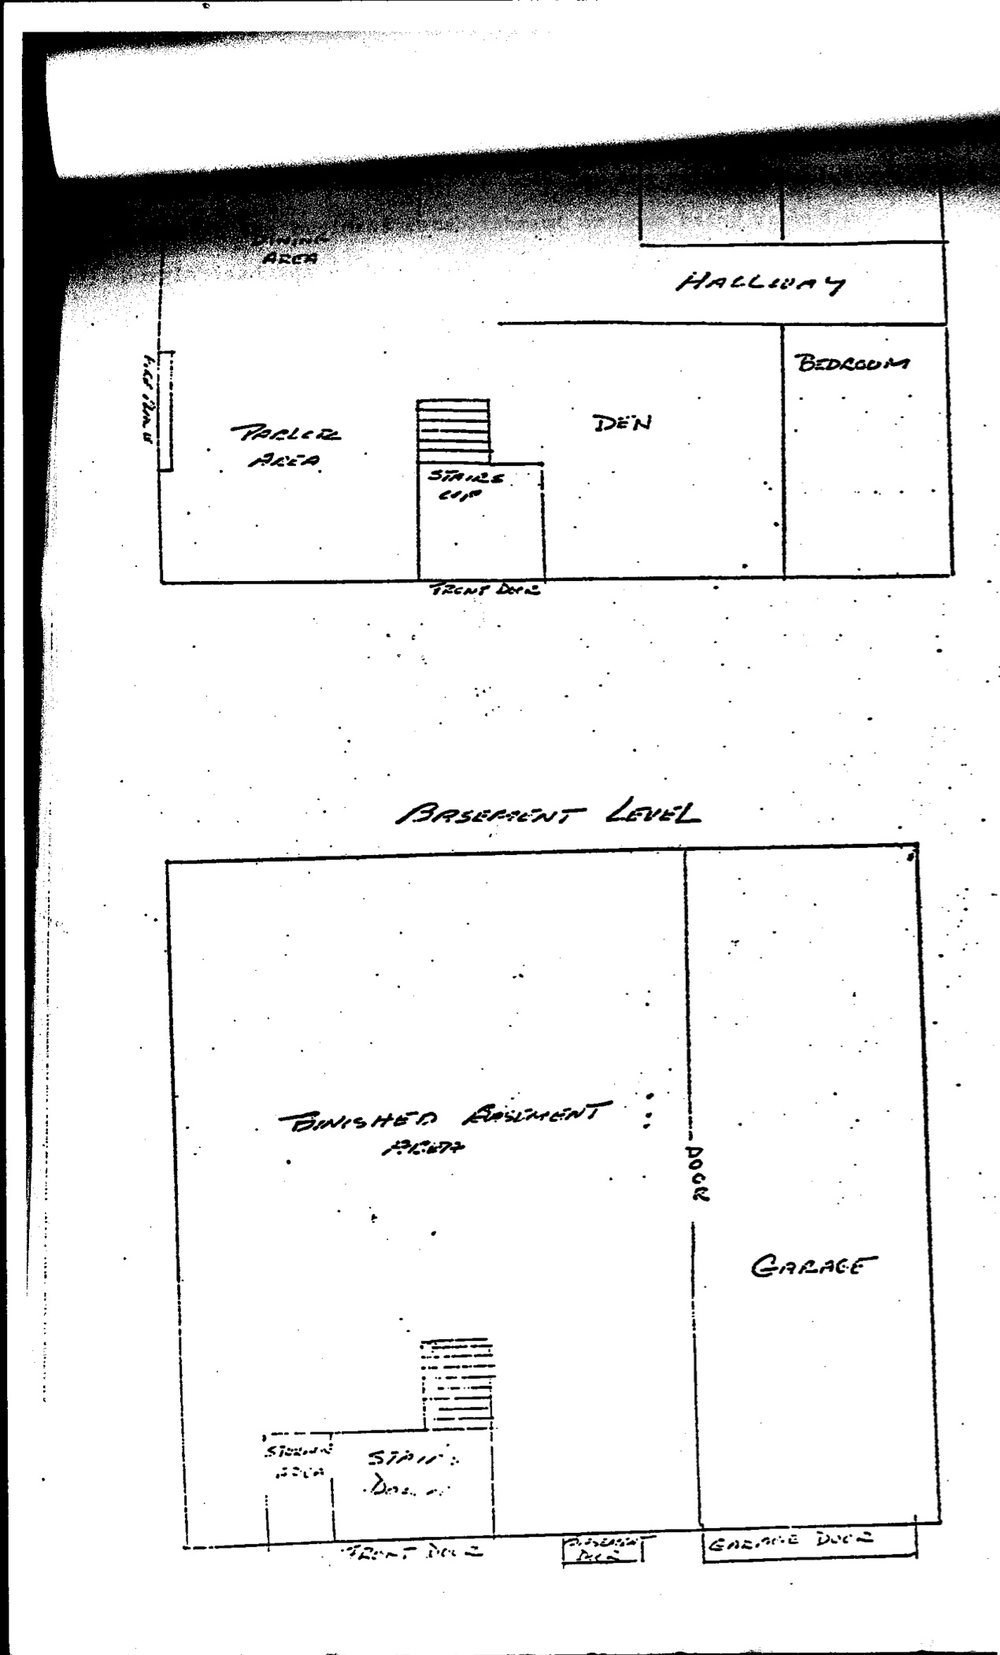 While devising a plan to break into Tony's home and plant hidden microphones, state police drew this map of the house. Courtesy of Brian Andrews.